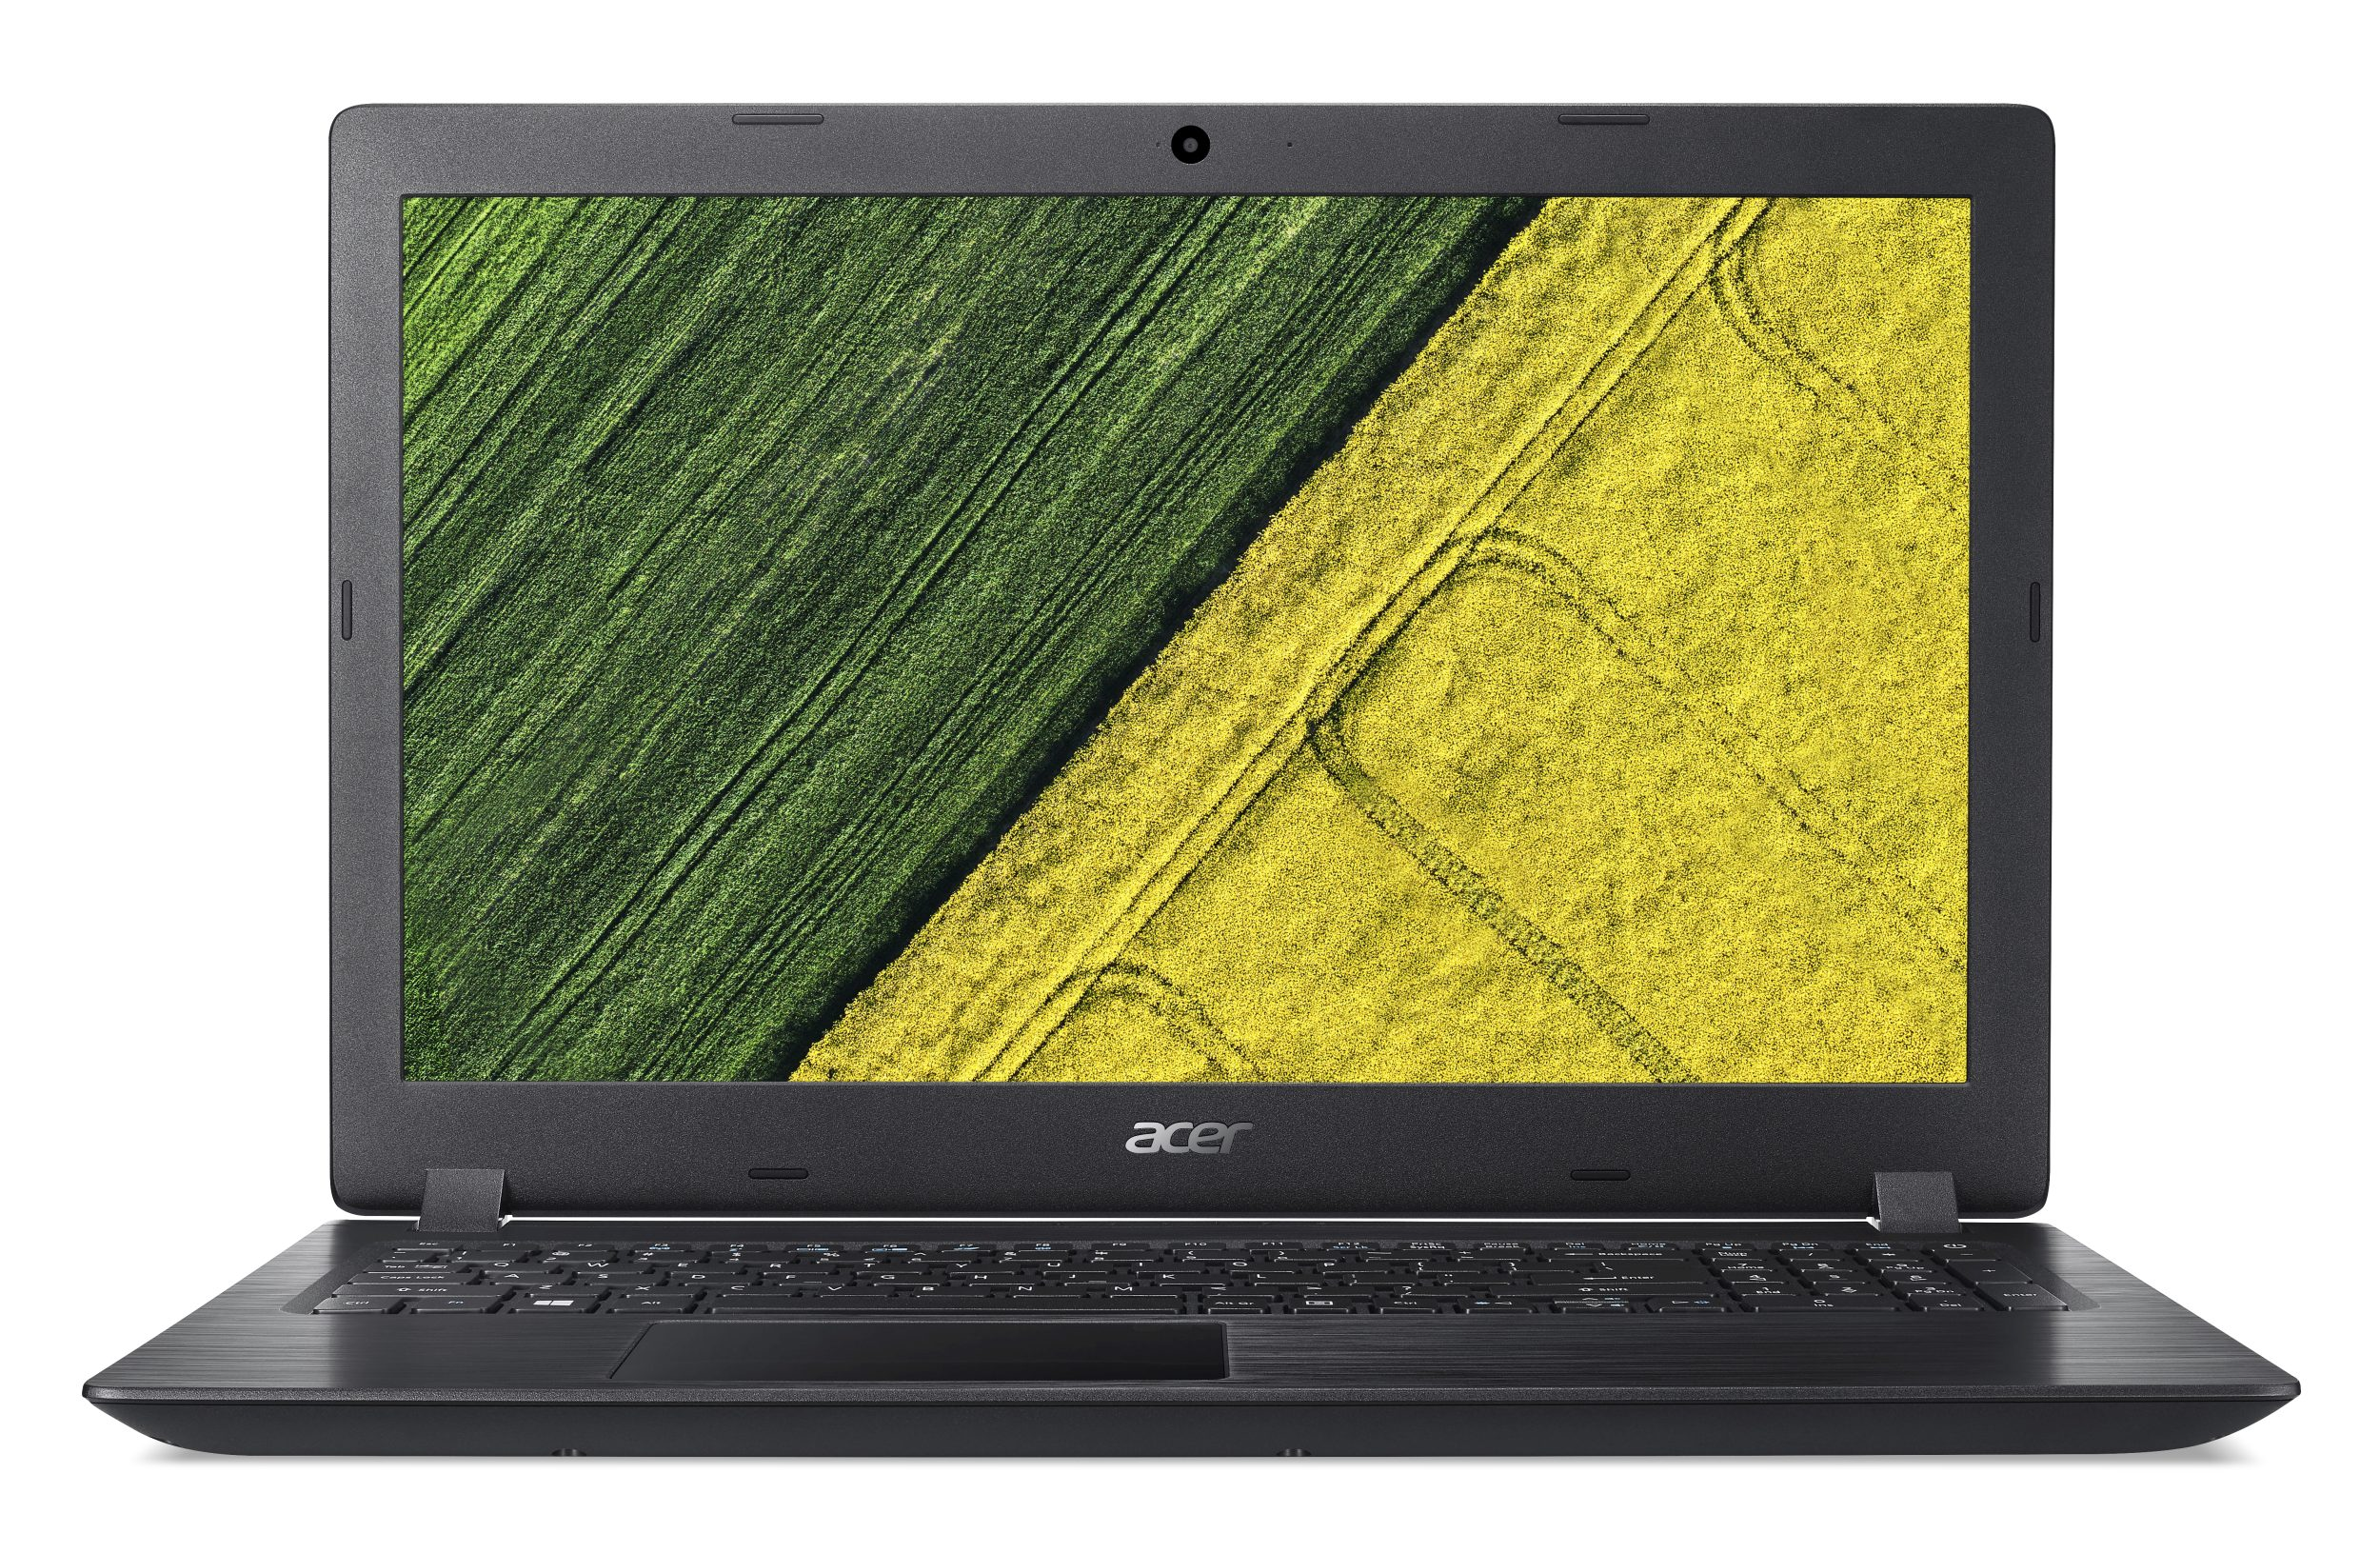 "Acer Aspire 3 (A315-31-C1T0) Celeron N3350/4GB/500GB/HD Graphics/15,6"" FHD LED matný/BT/W10 Home/Black"